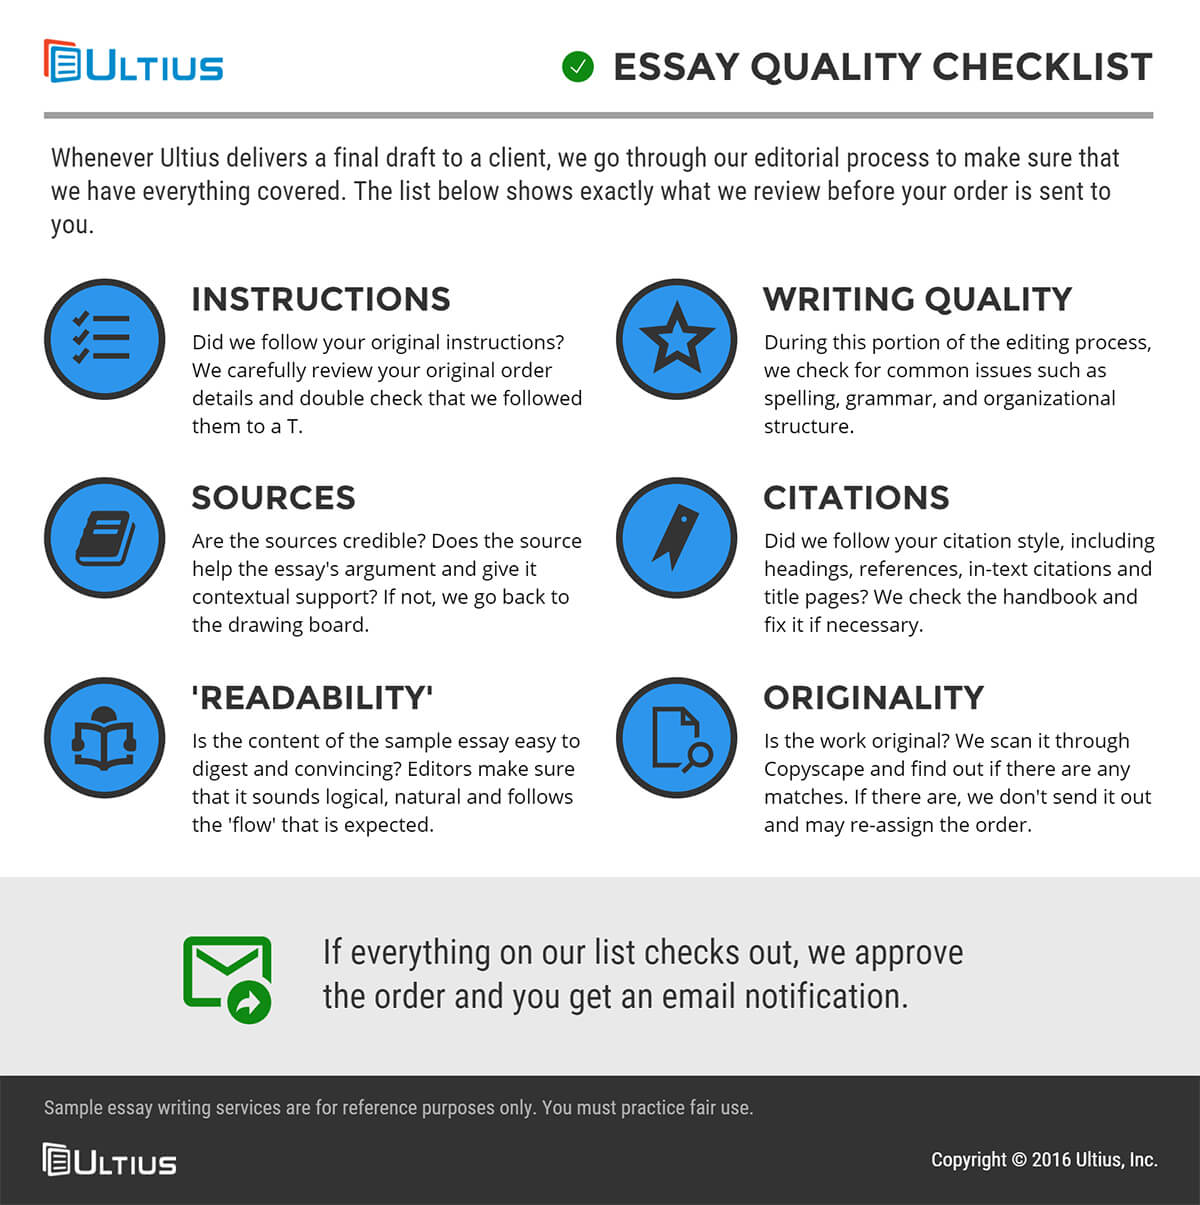 buy critical essay online 100% original made in the usa ultius purchased essay quality checklist